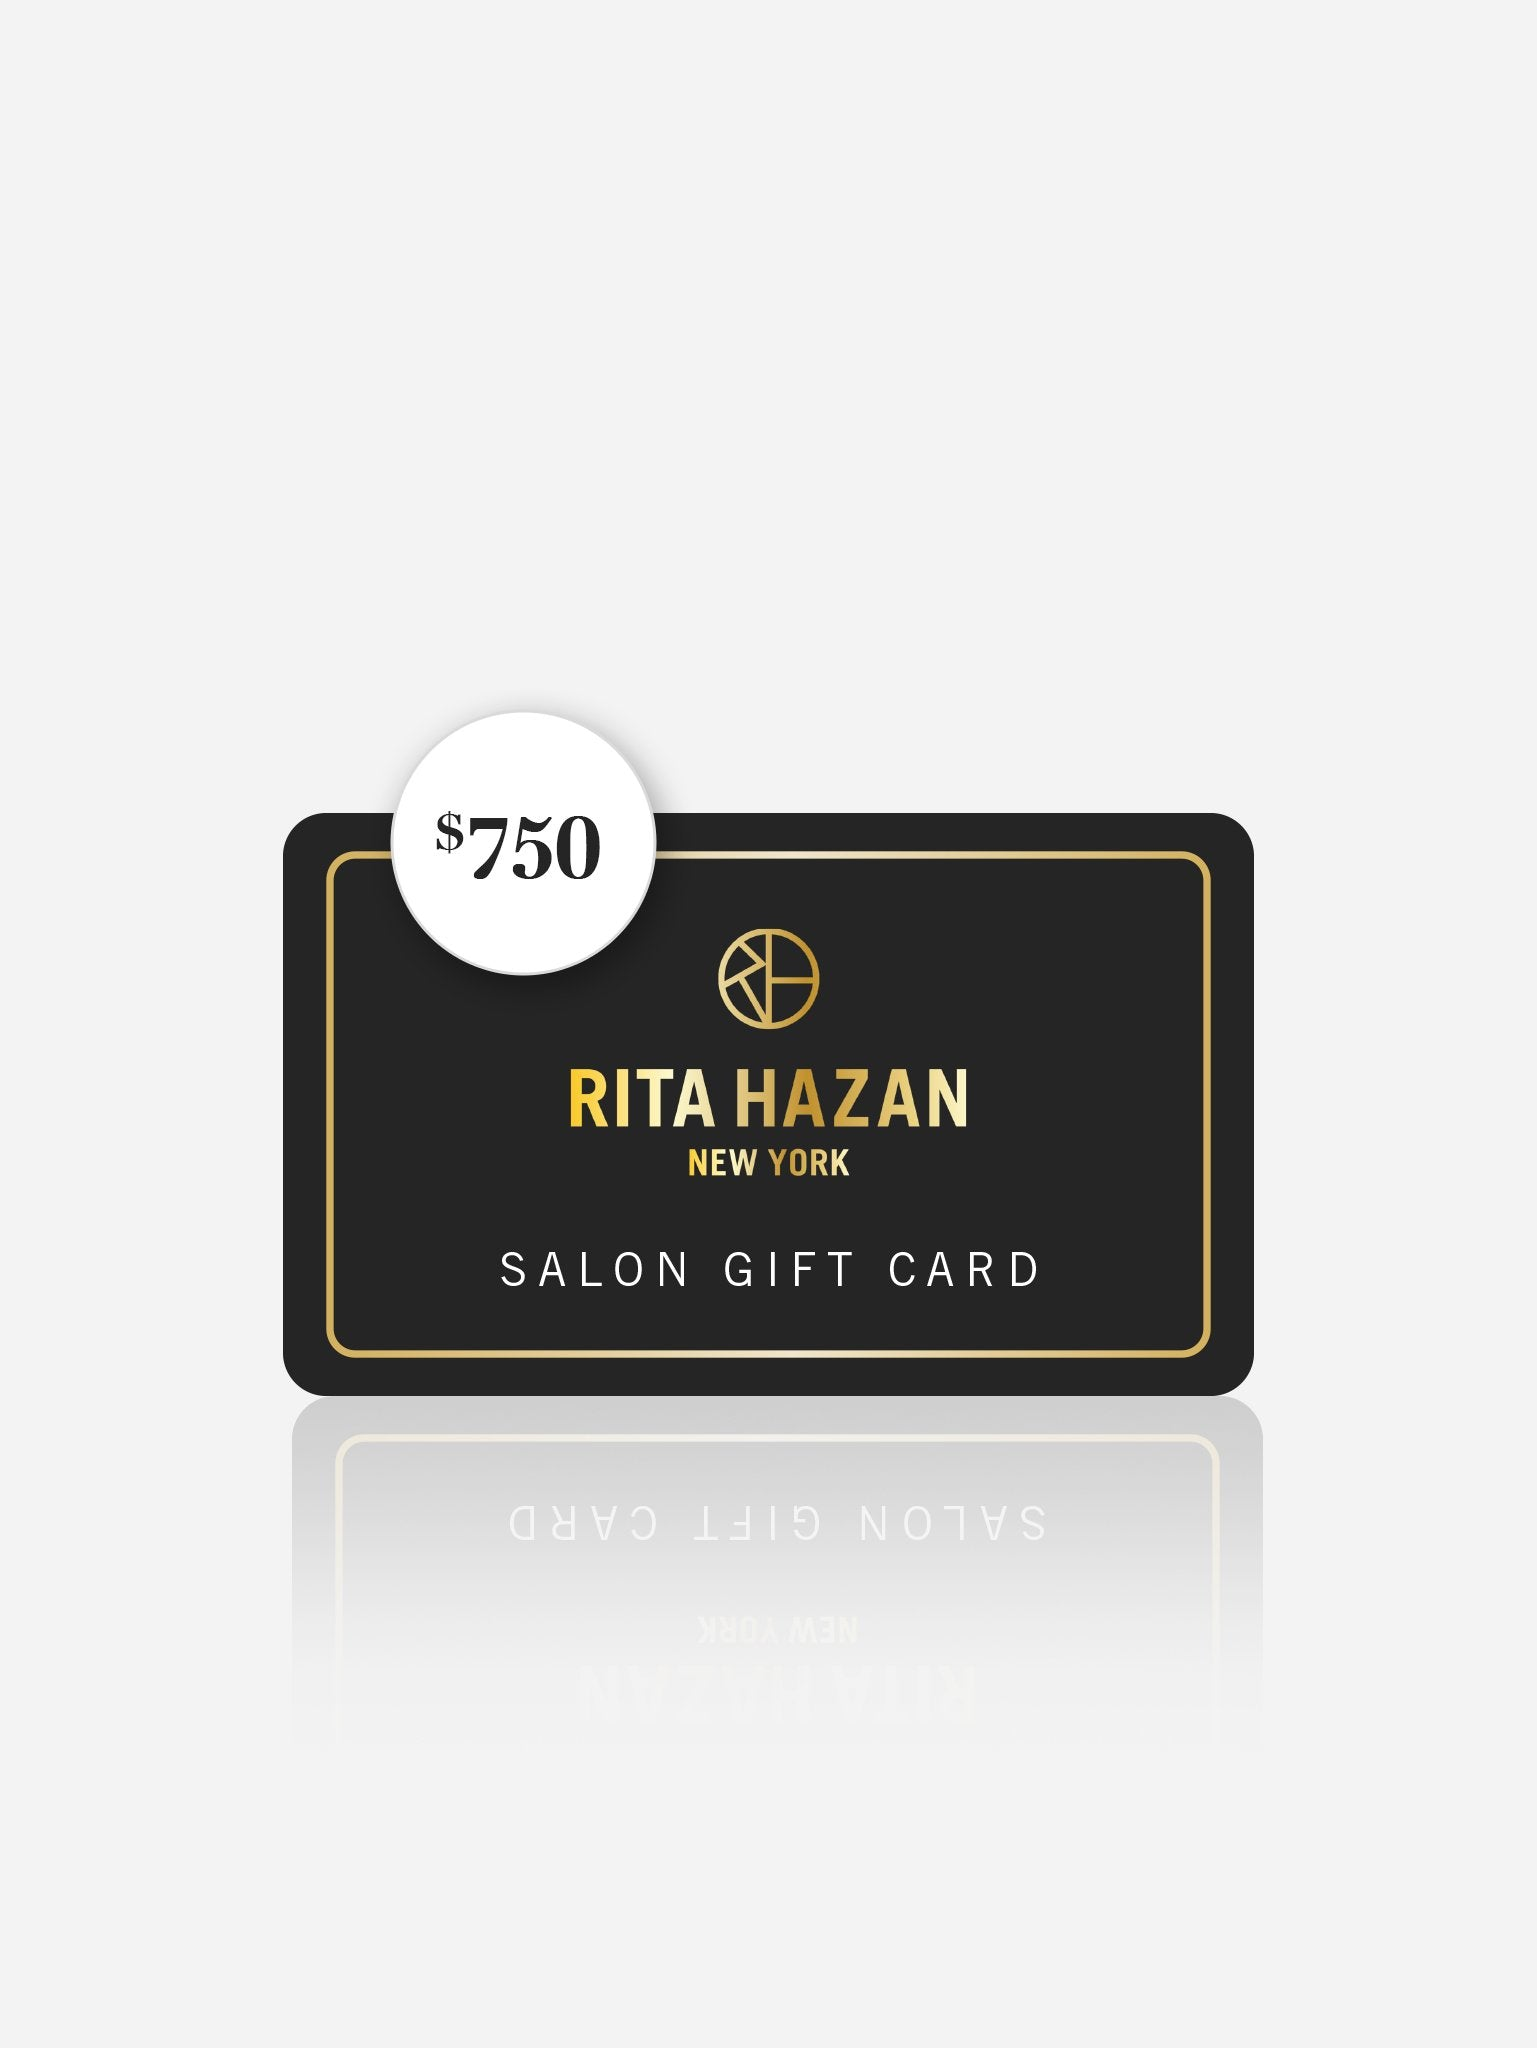 Rita Hazan Salon Gift Card